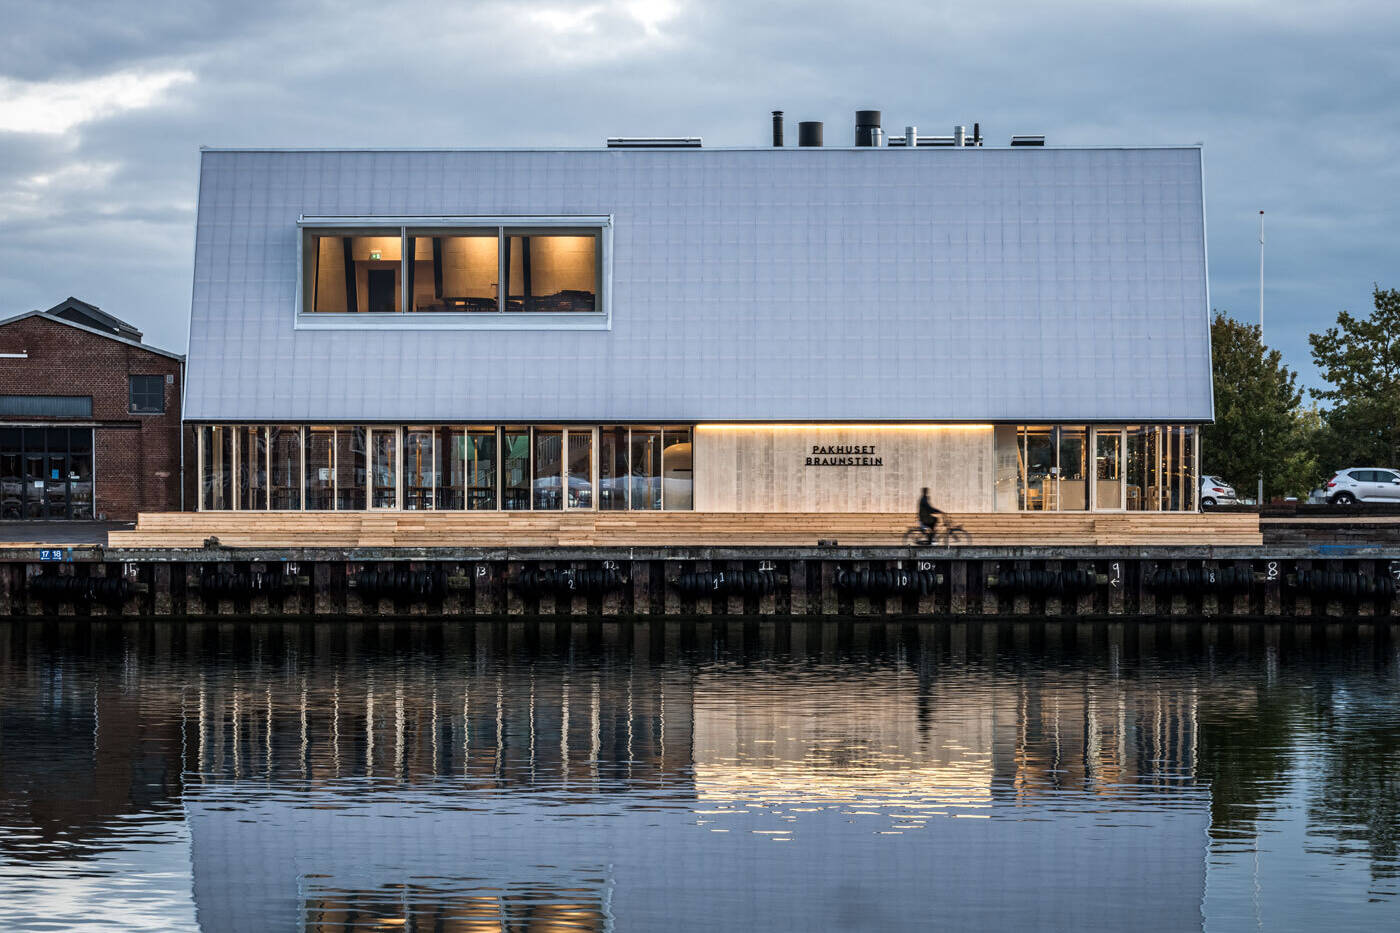 Denmark's Pakhuset taphouse could show the way forward for eco-friendly construction